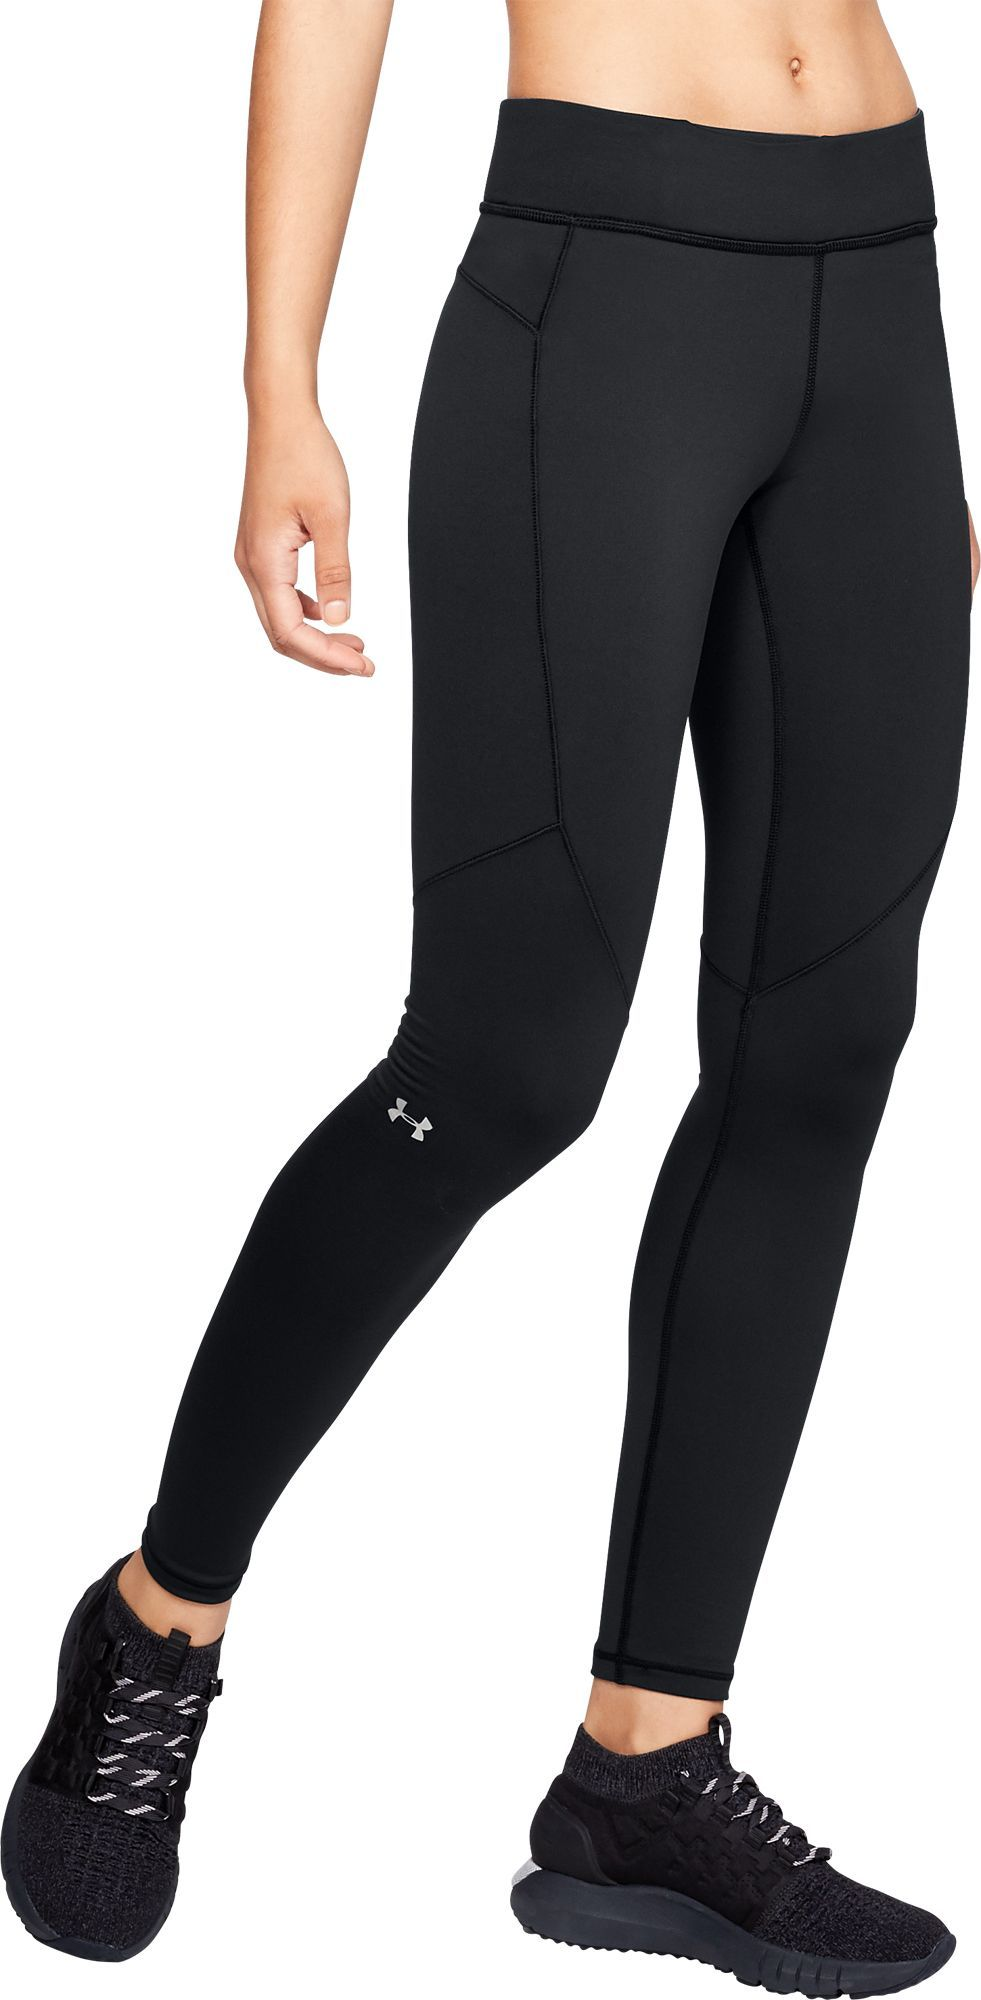 b843fb0e Under Armour Women's ColdGear Armour Leggings in 2019 | Products ...